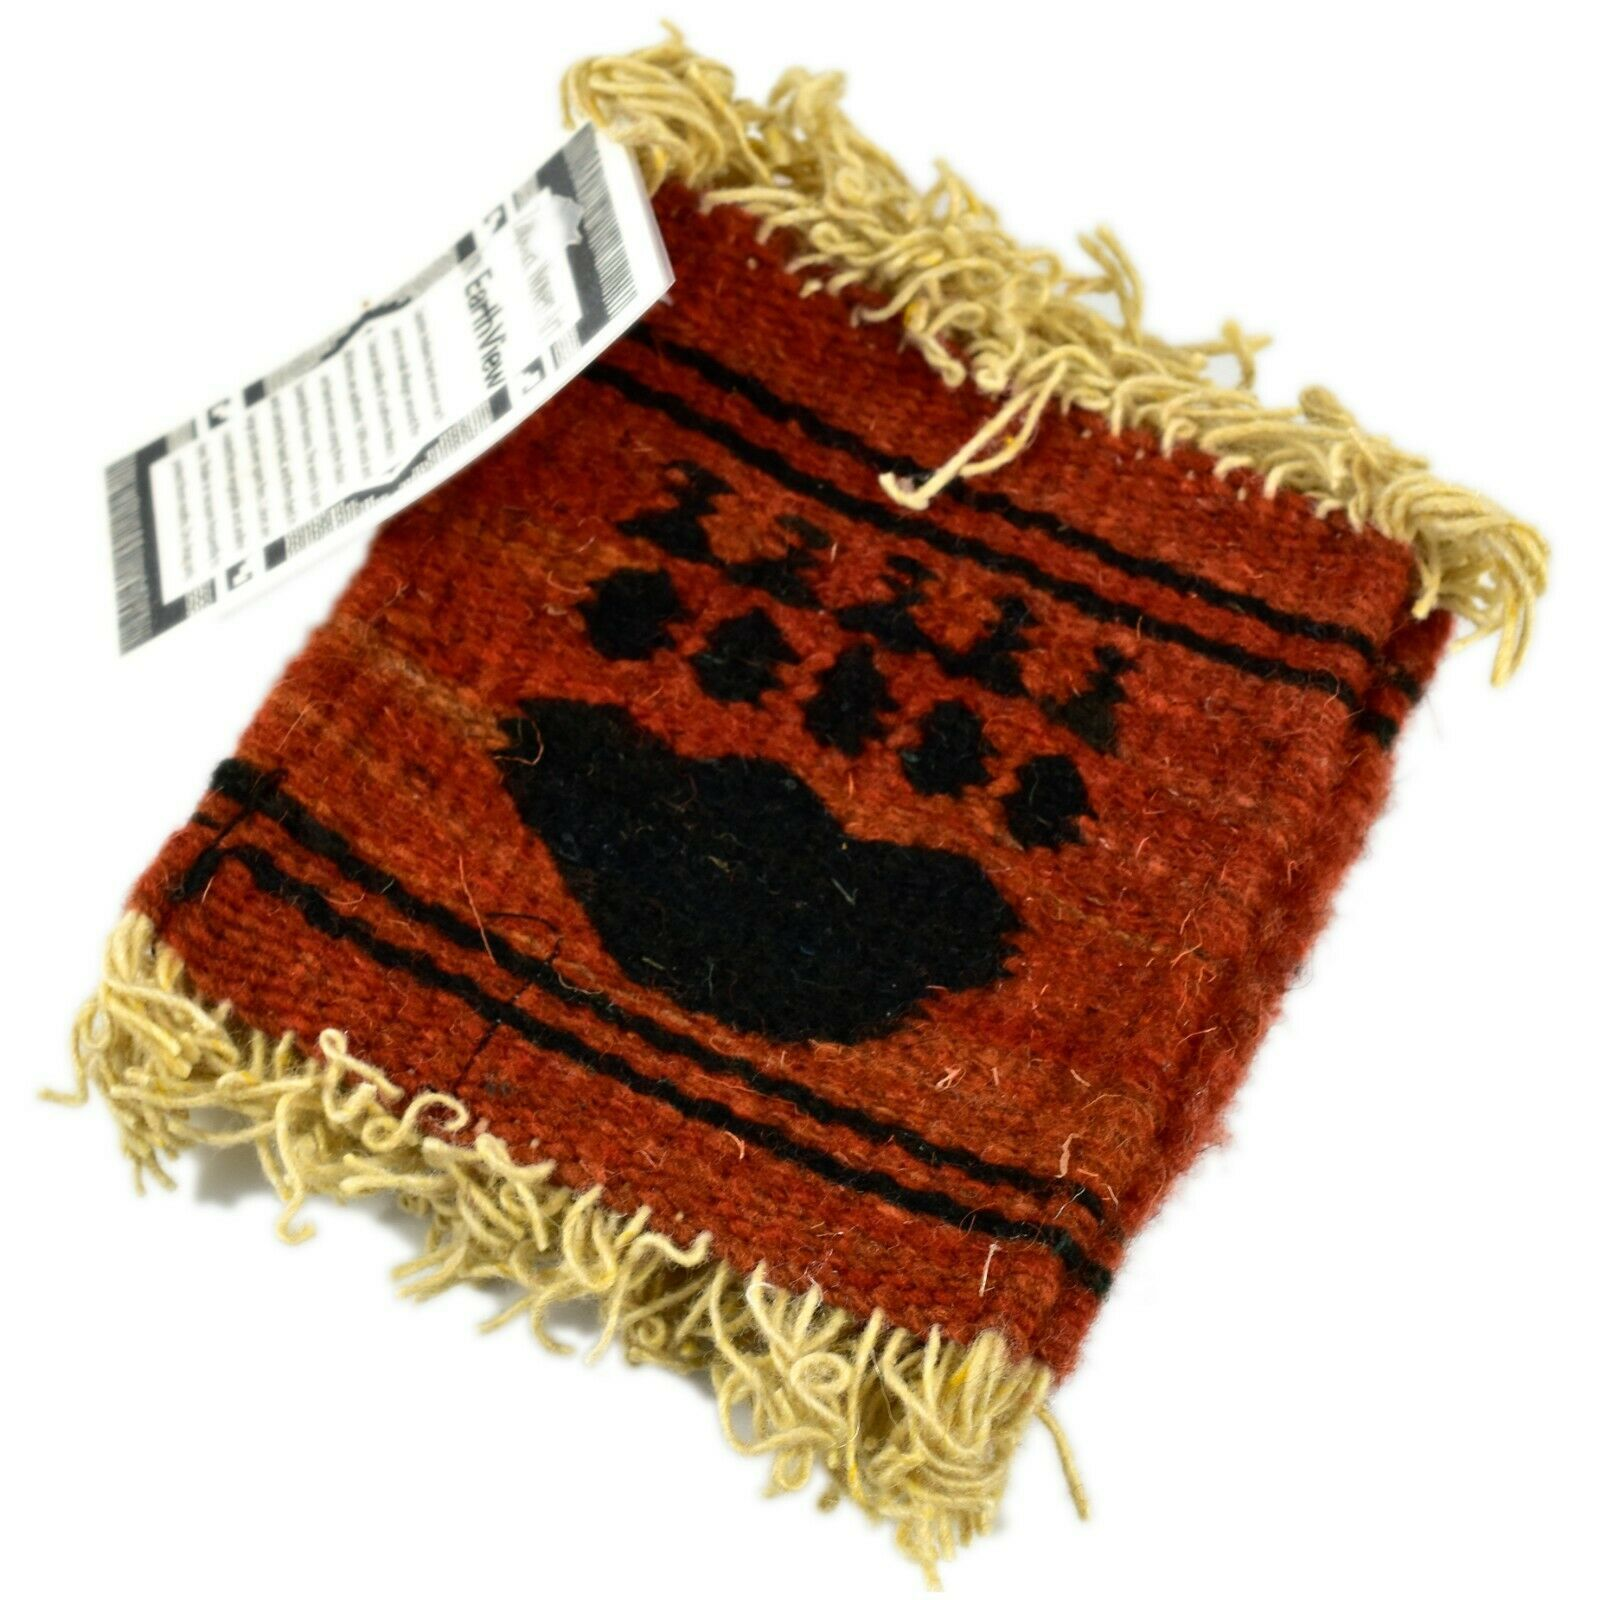 Handmade Zapotec Indian Weaving Hand-Woven Bear Claw Red Wool Coaster Set of 4